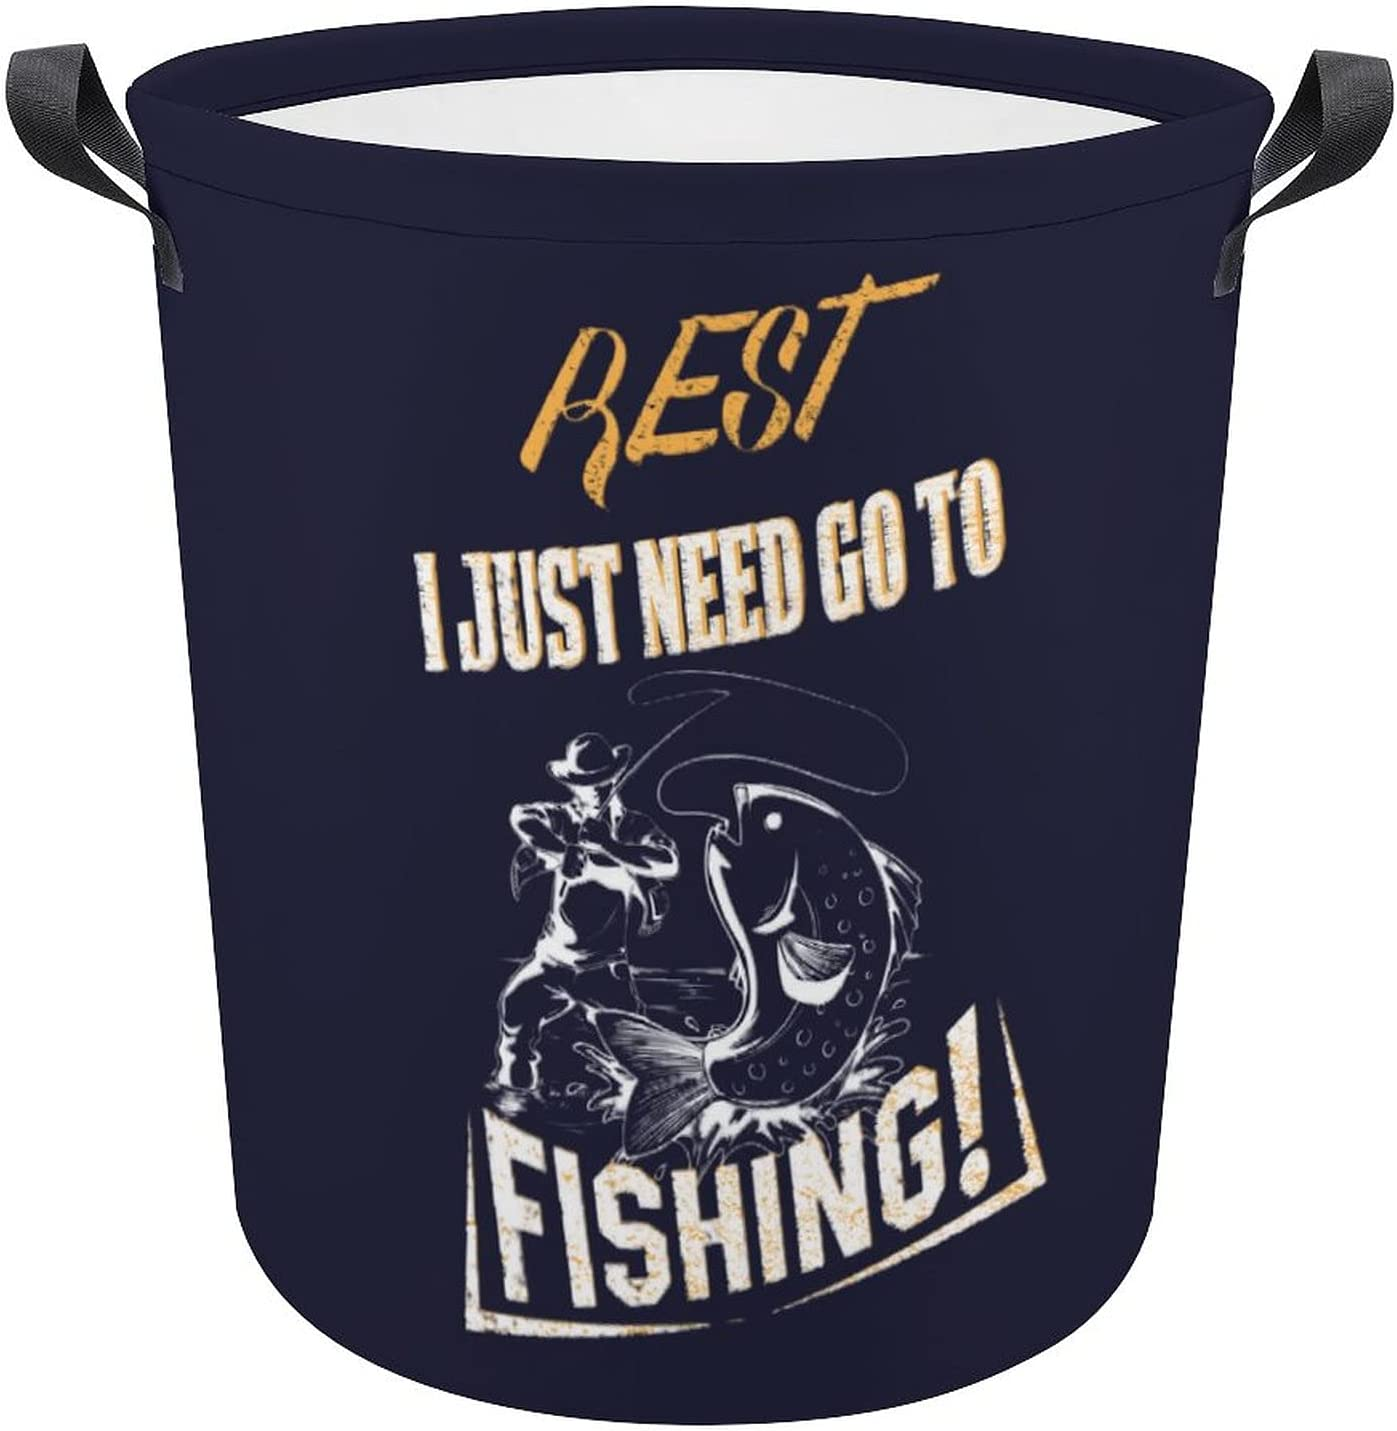 Funny Many popular brands Fishing Fans Fisher Excellent Saying Laundry Port Oxford Hamper Gift